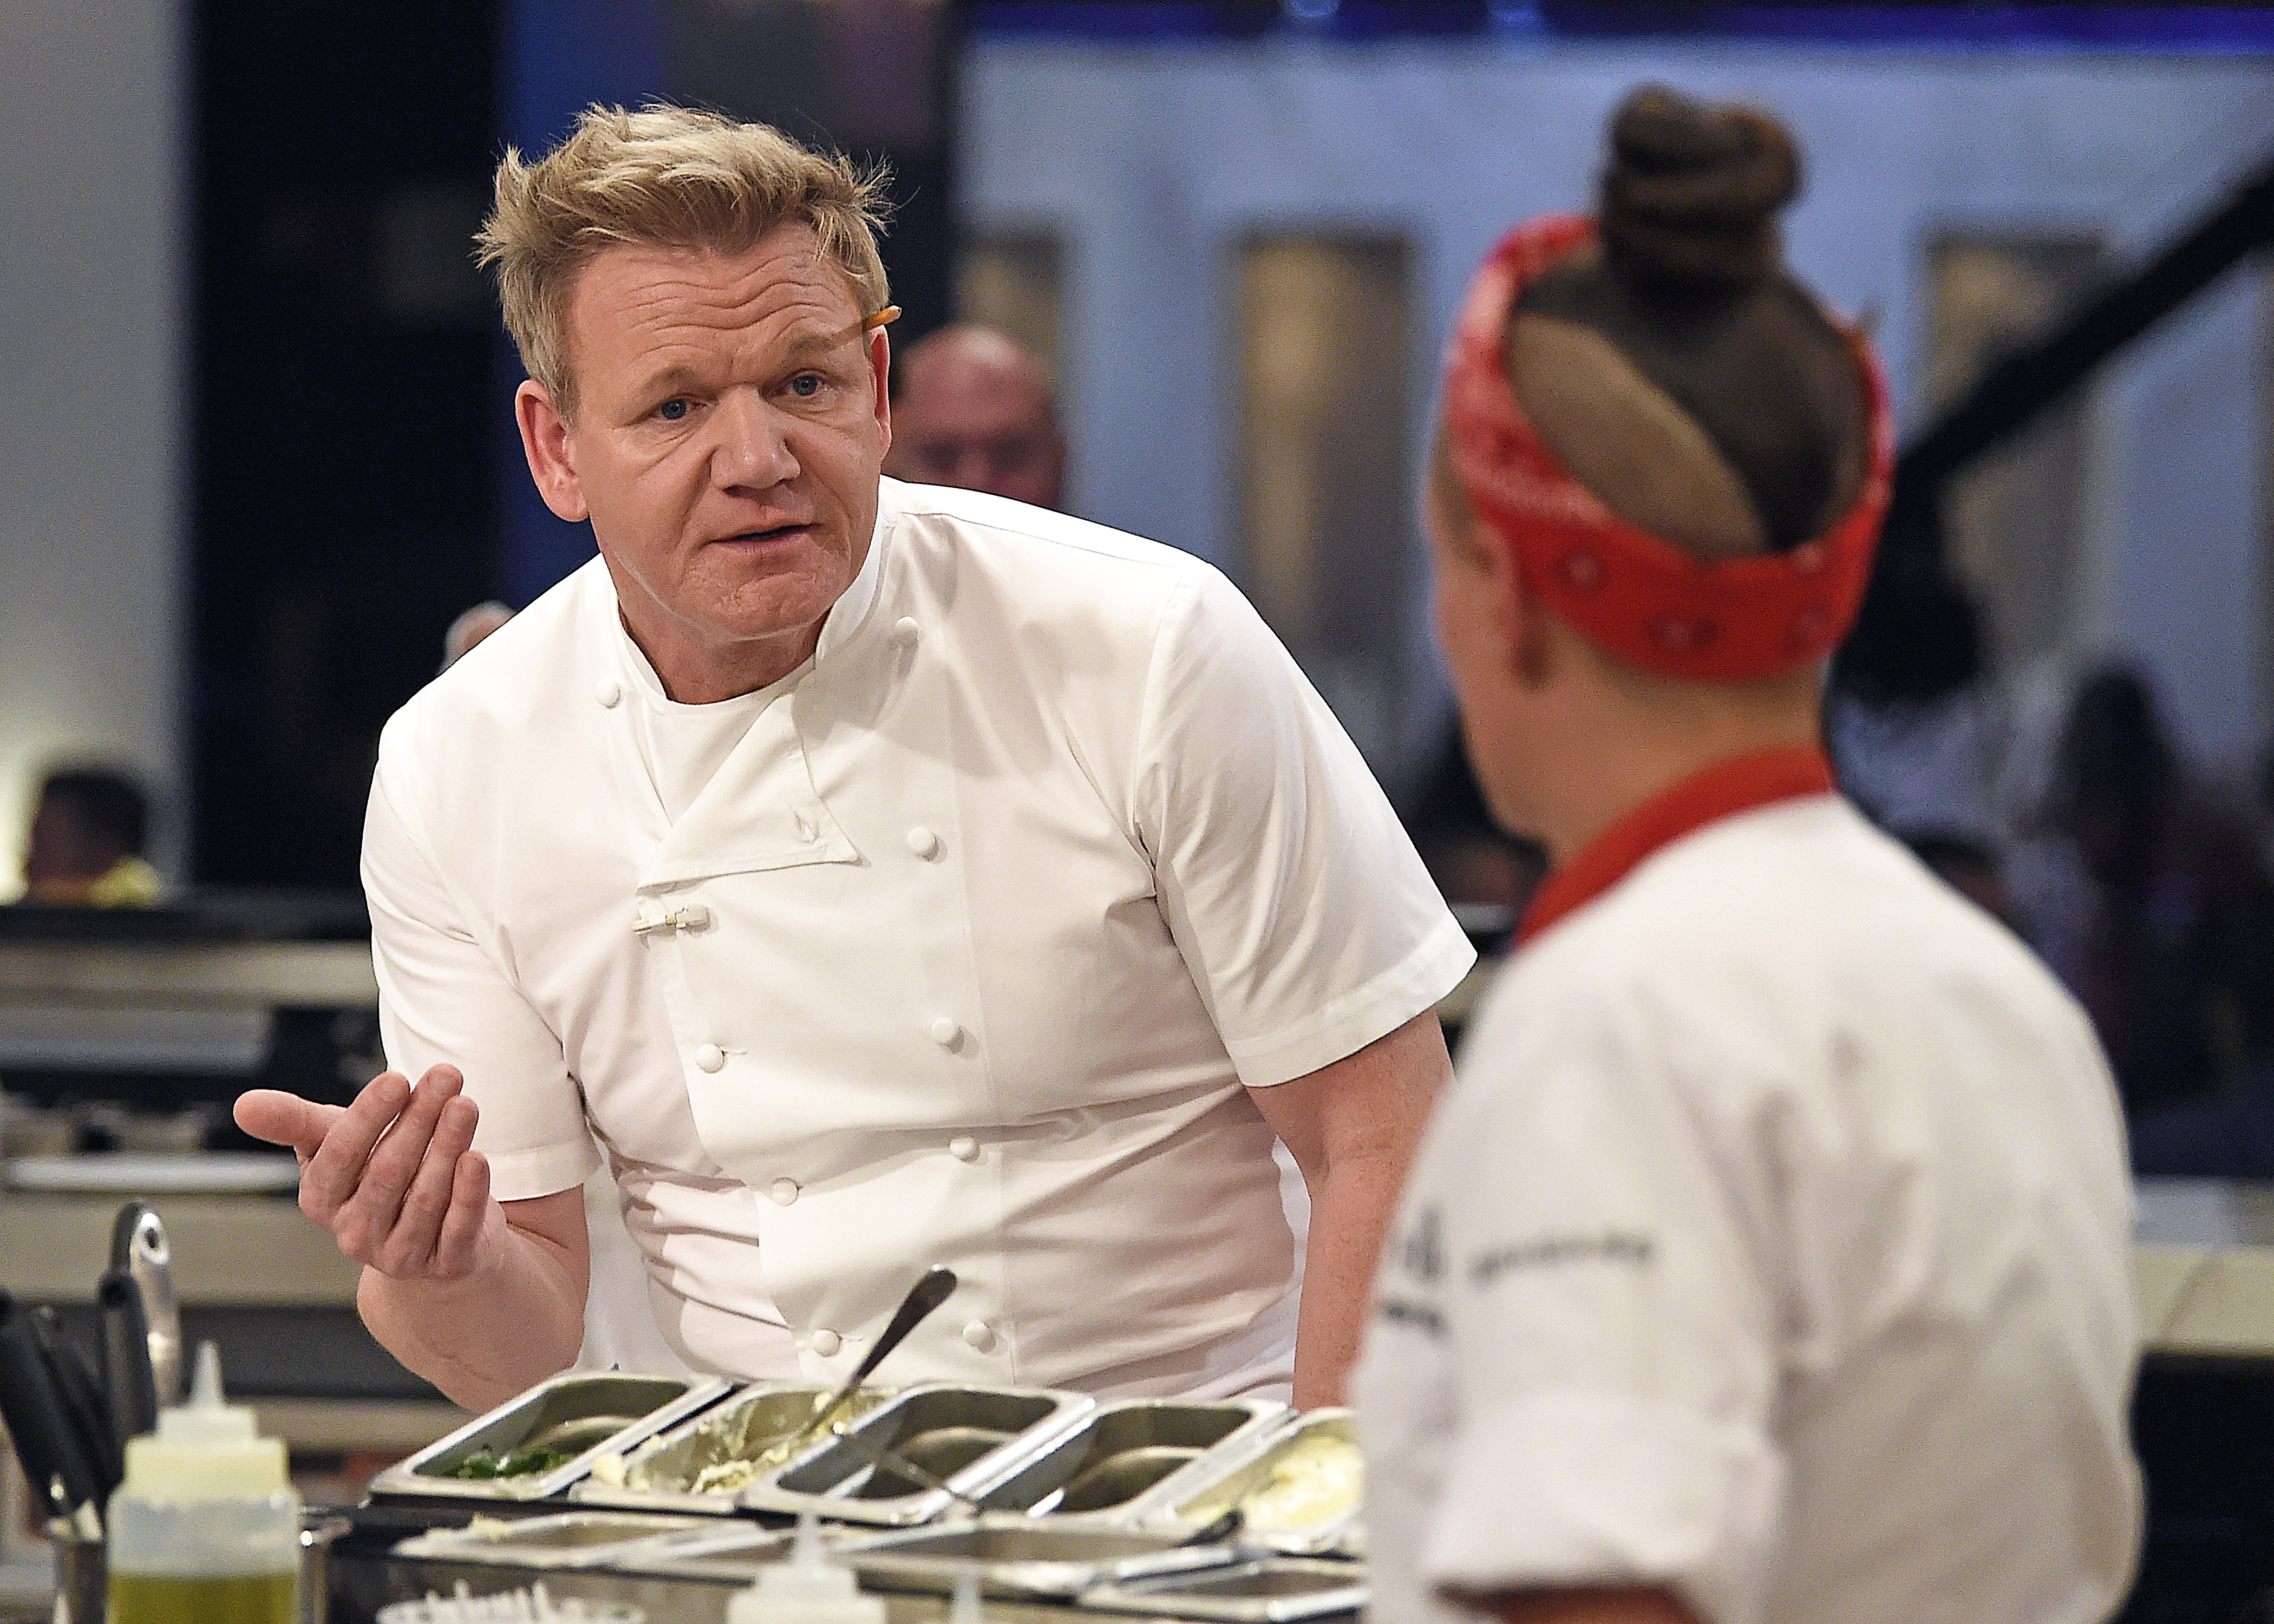 Hell S Kitchen Season 20 Date Cast Synopsis Trailer And More